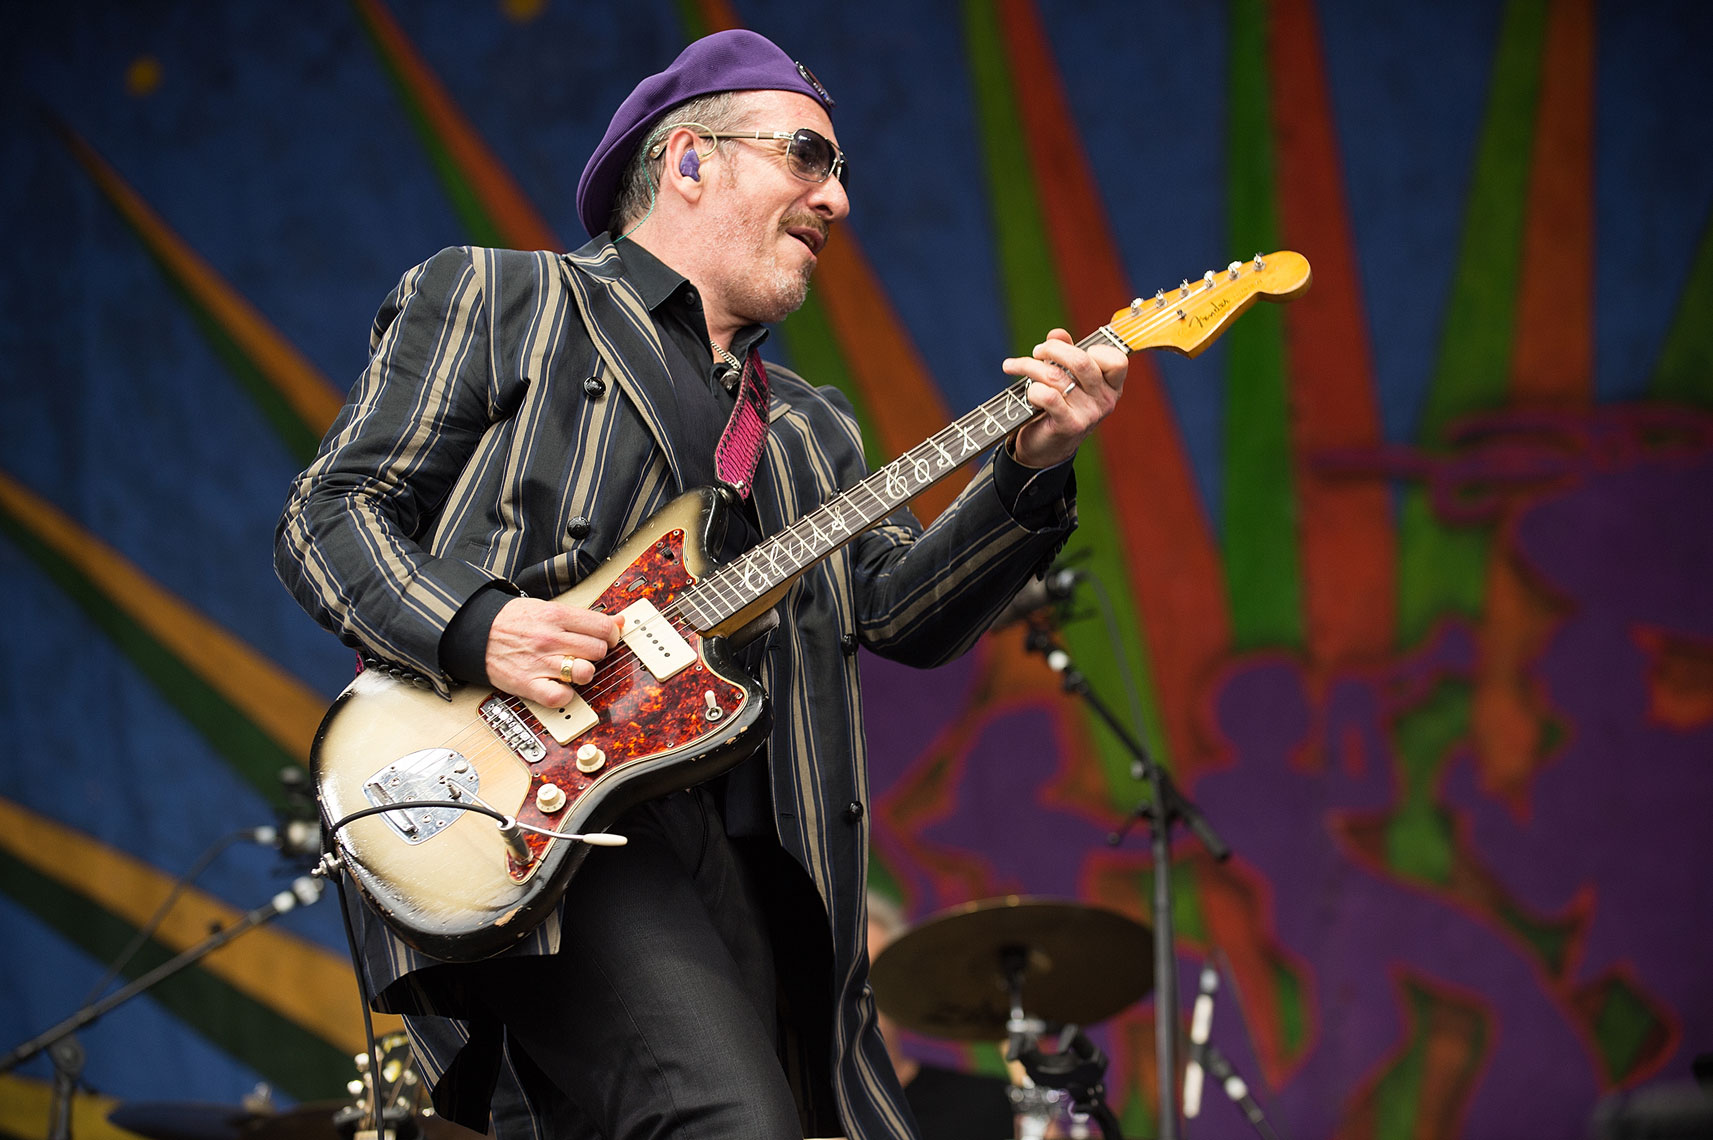 Elvis-Costello-at-New-Orleans-jazz-fest-2016